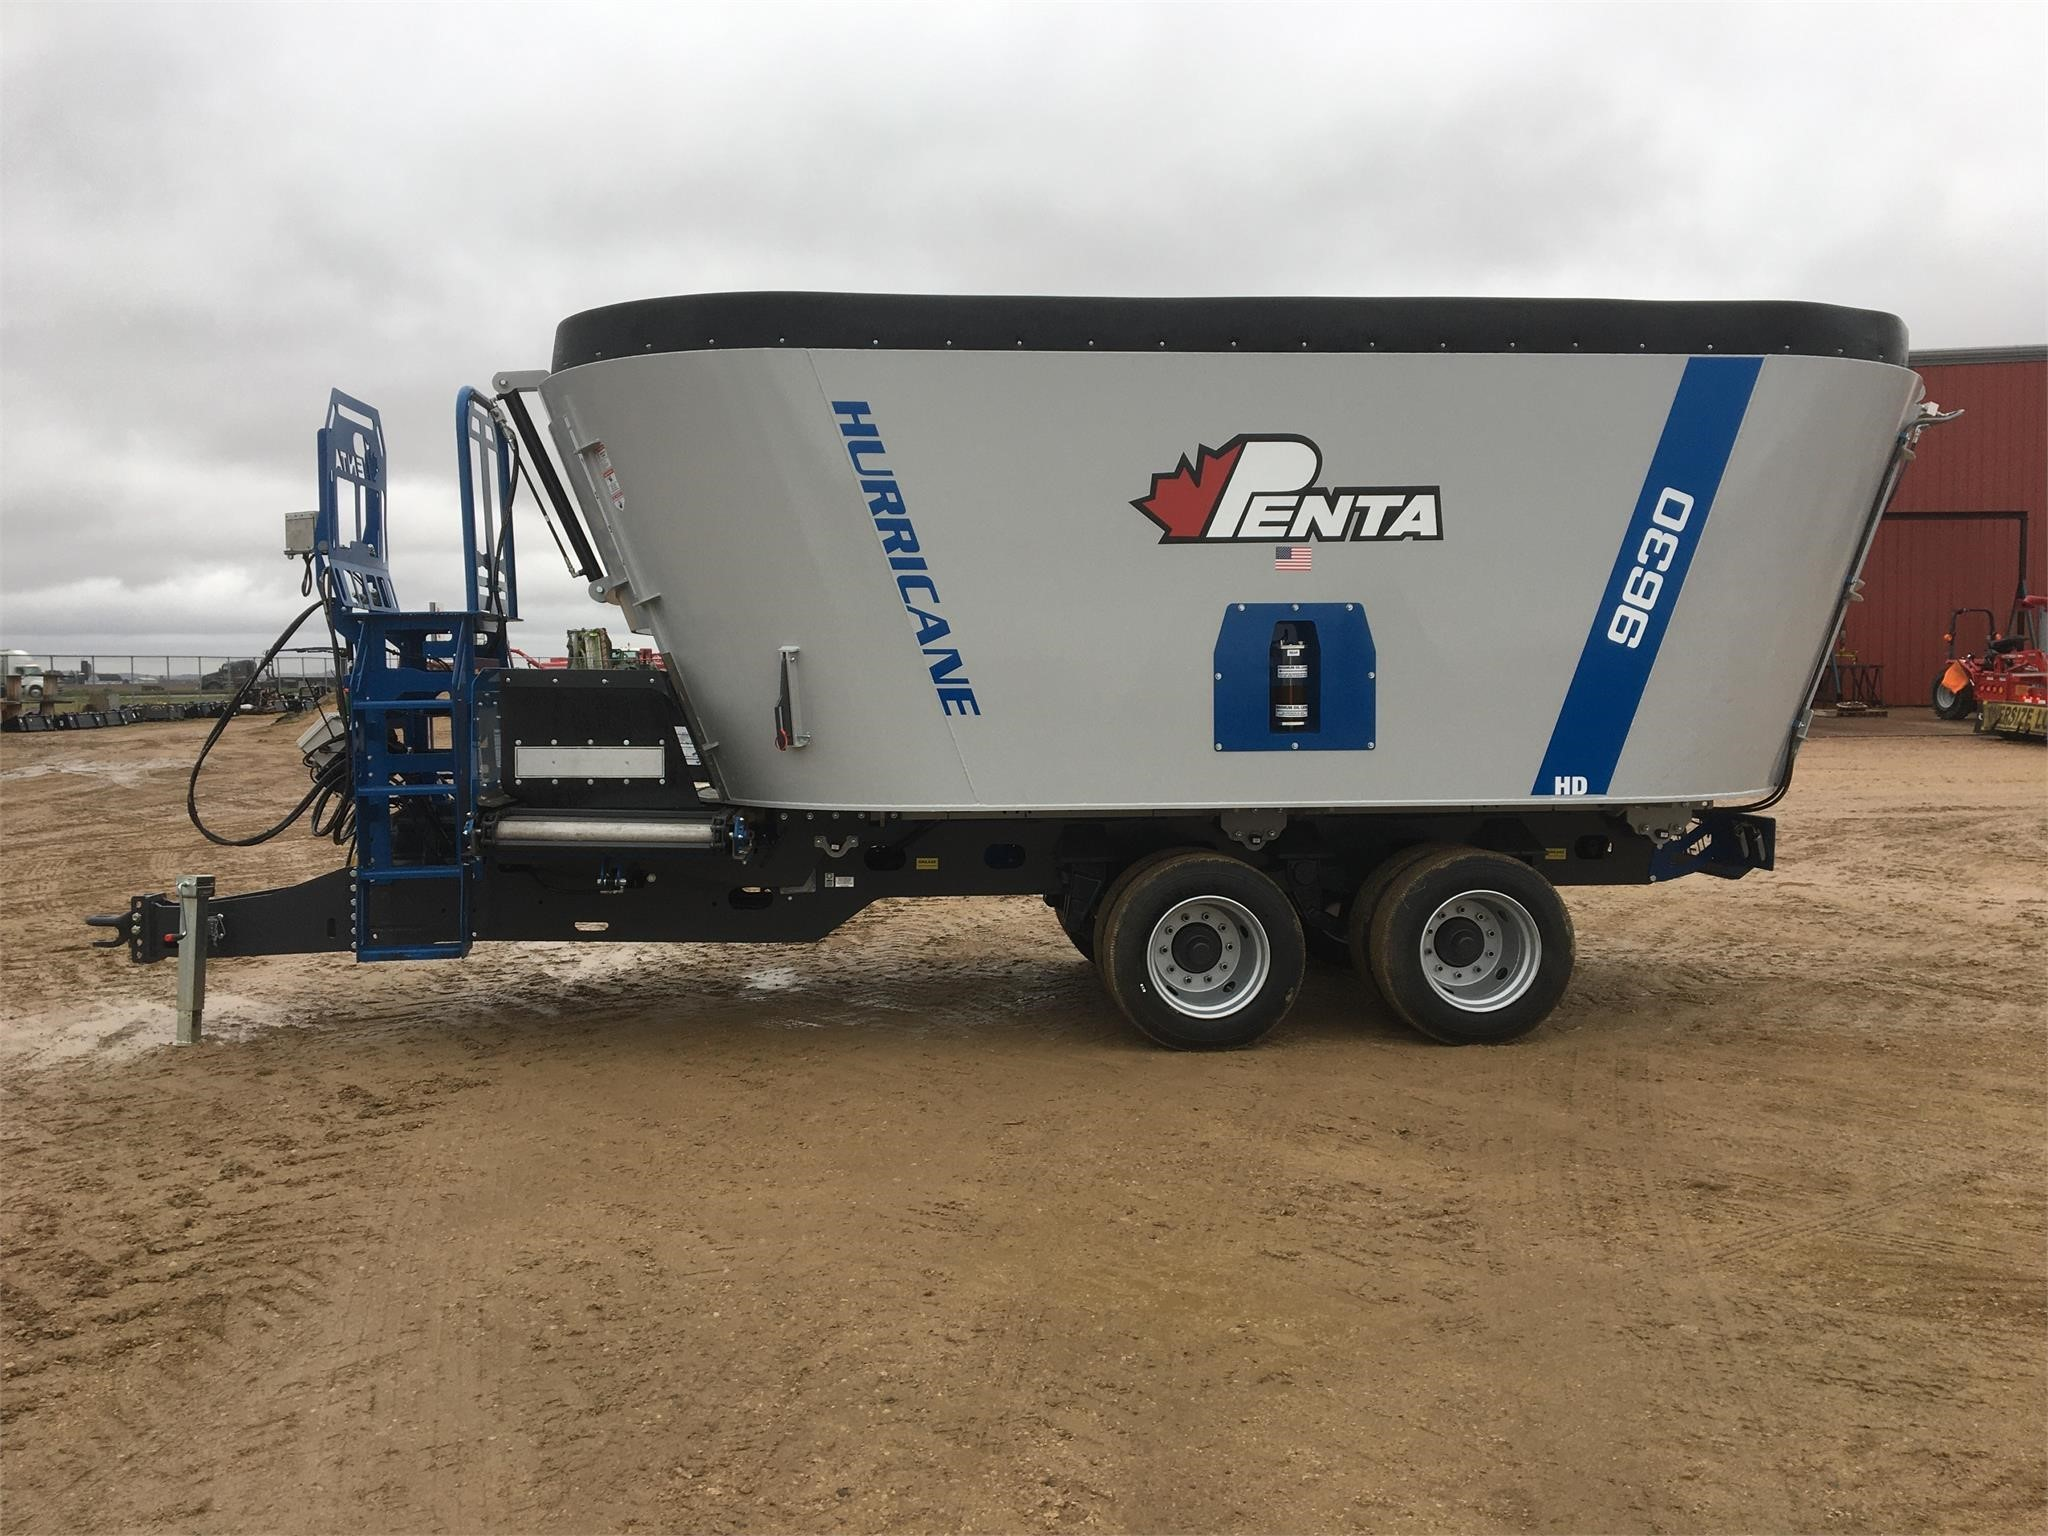 2019 Penta 9630 Grinders and Mixer